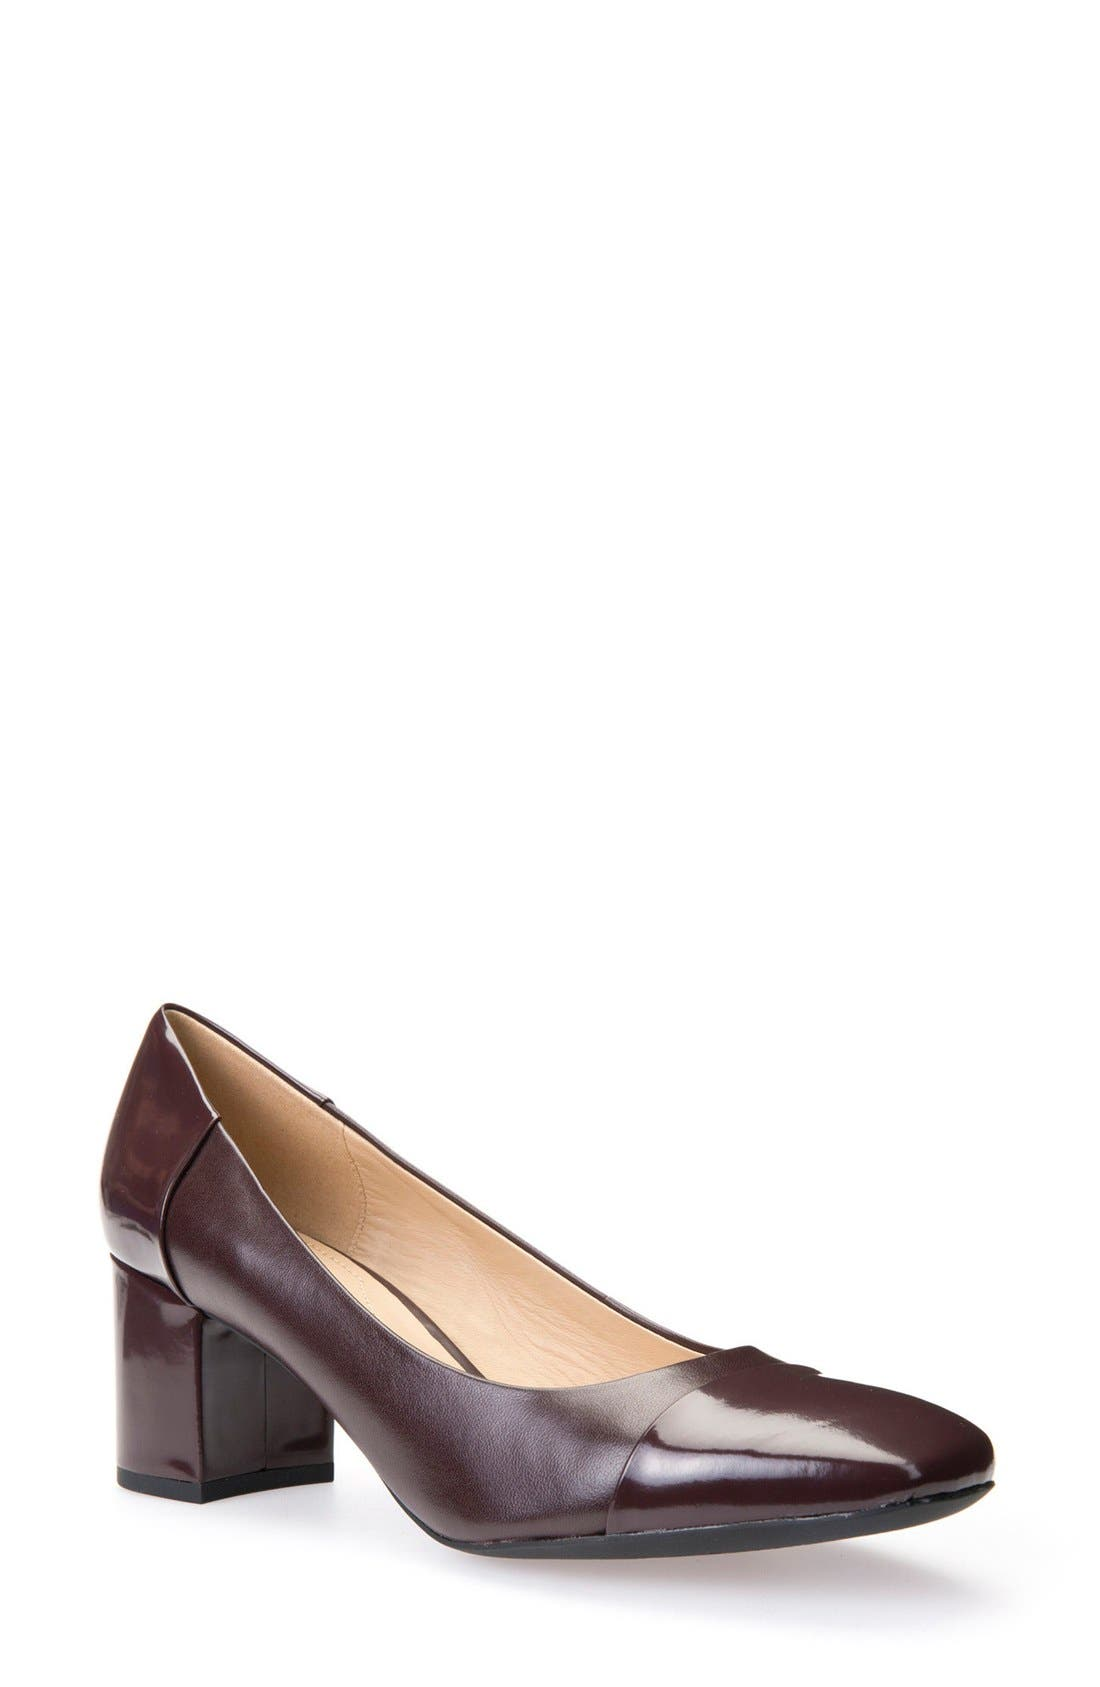 Main Image - Geox New Symphony Cap Toe Pump (Women)